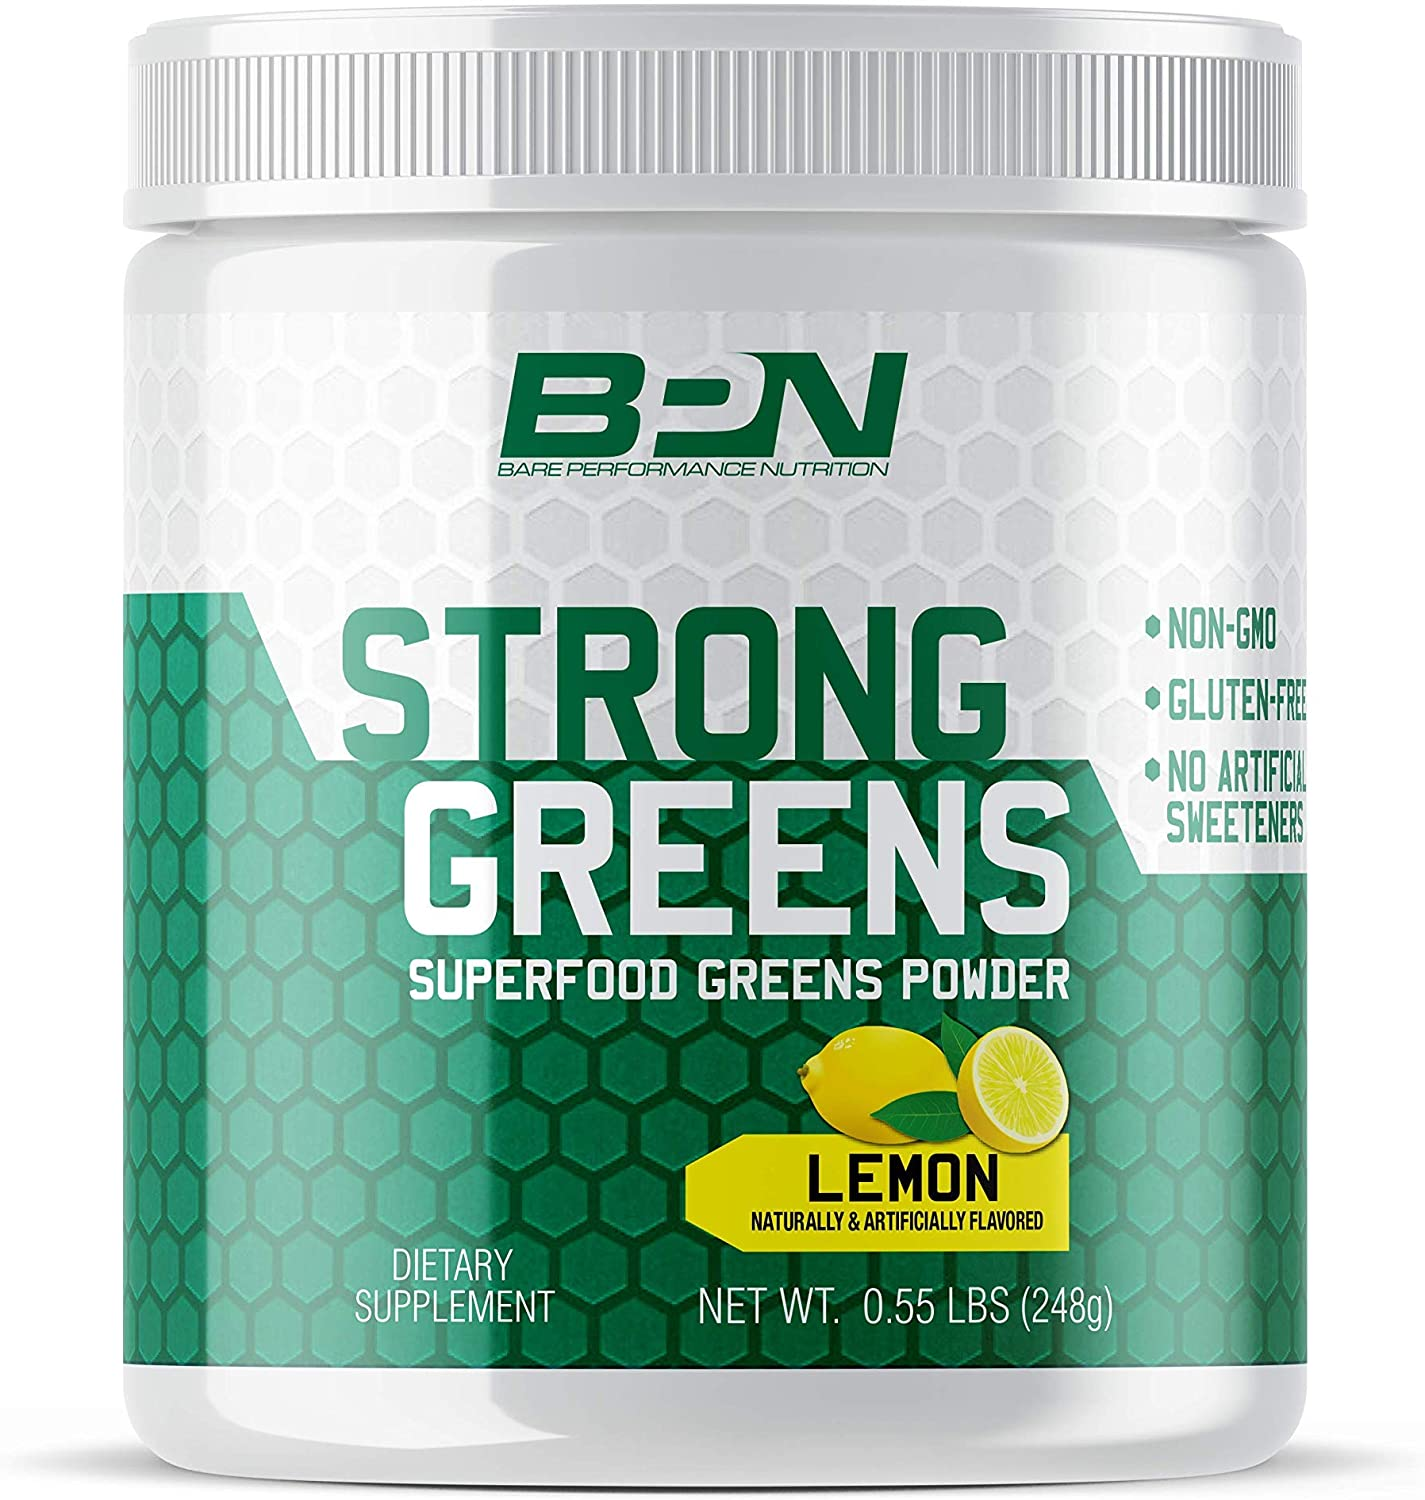 Bare Performance Nutrition, Strong Greens Superfood Powder, Antioxidants, Non-GMO, Gluten Free and No Artificial Sweeteners, Wheat Grass, Coconut Water, Turmeric and Monk Fruit (Lemon)